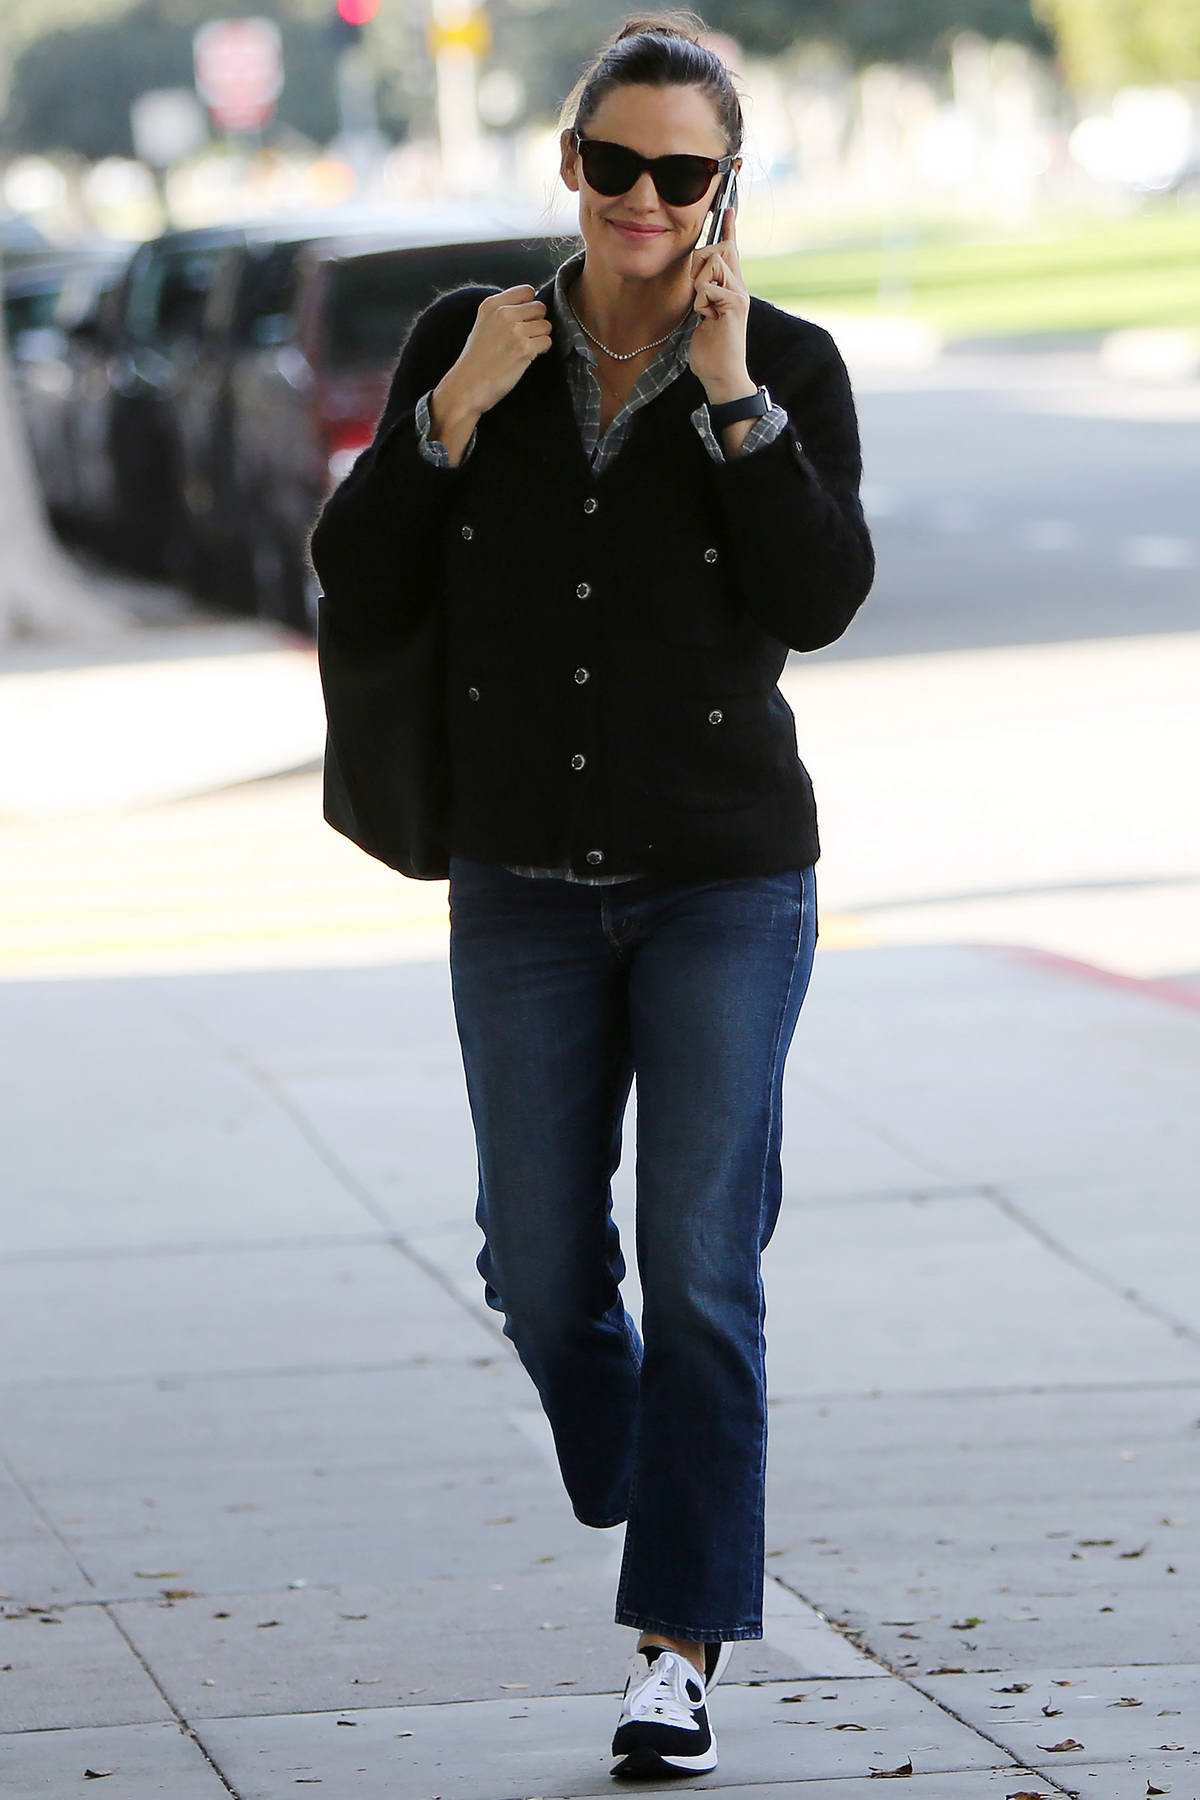 Jennifer Garner looks busy on her phone while out running errands in Los Angeles